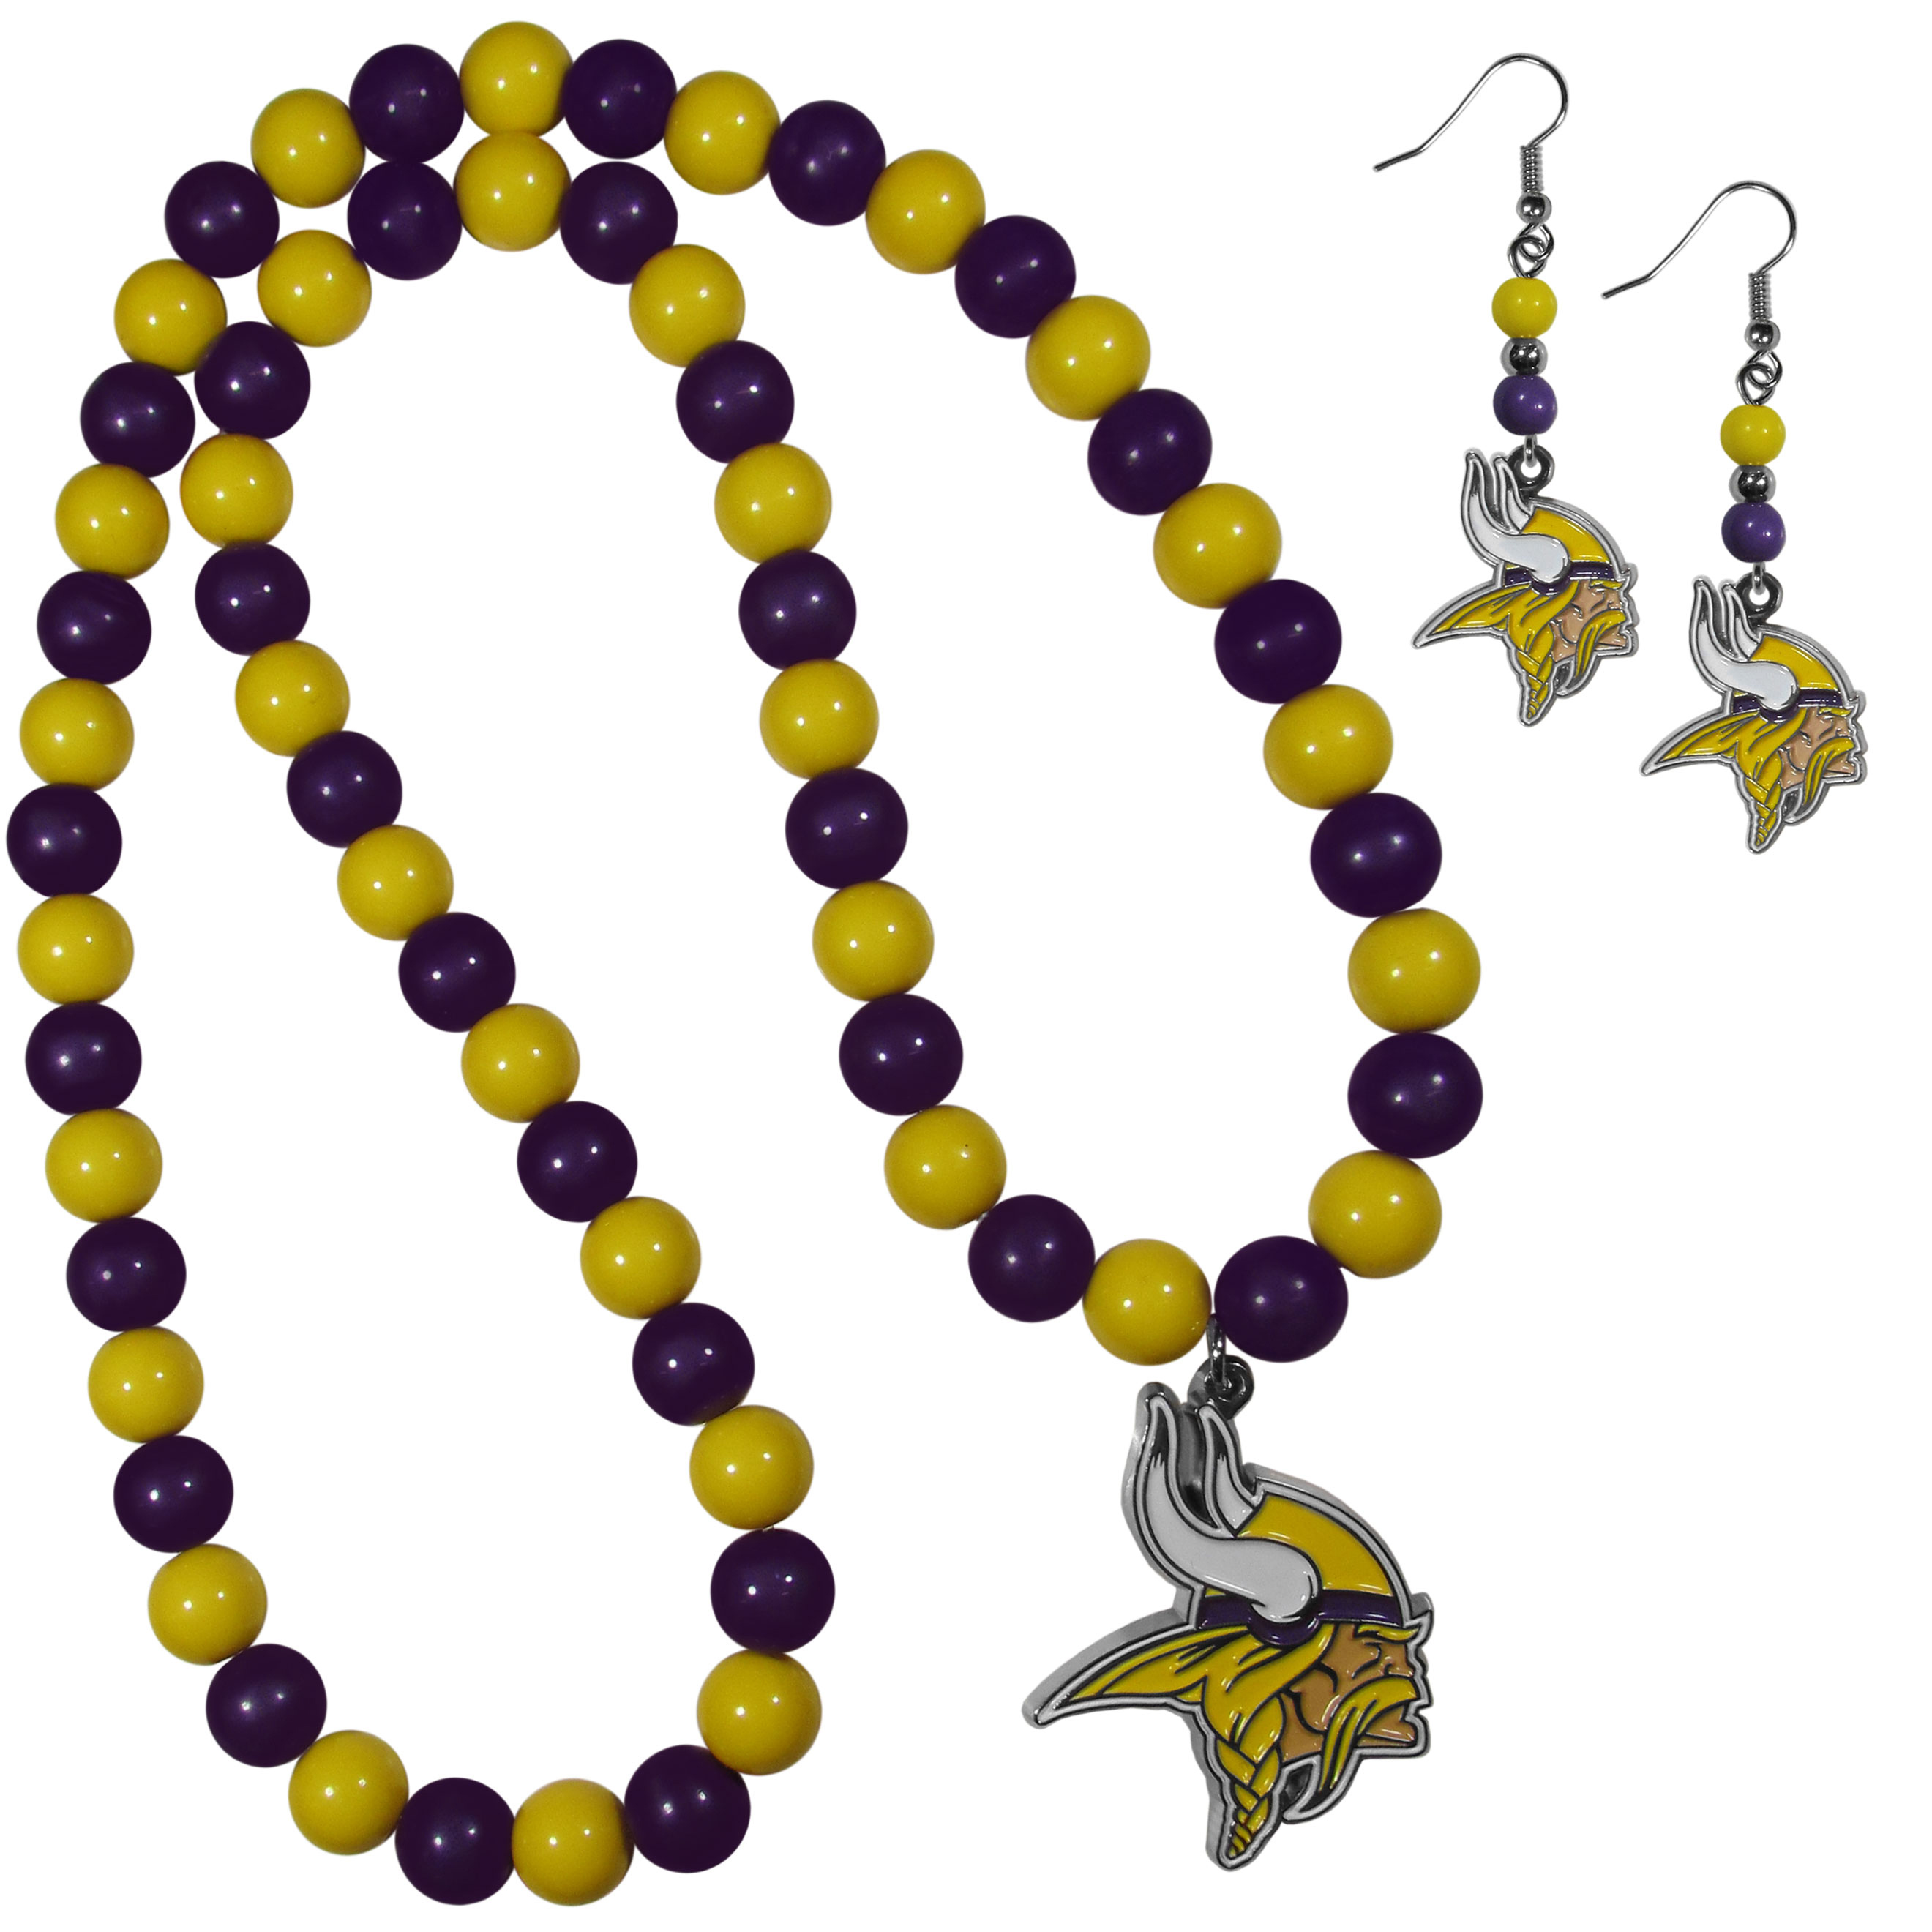 Minnesota Vikings Fan Bead Earrings and Necklace Set - These fun and colorful Minnesota Vikings fan bead jewelry pieces are an eyecatching way to show off your team spirit. The earrings feature hypoallergenic, nickel free fishhook post and 2 team colored beads with a beautifully carved team charm to finish this attractive dangle look. The mathcing bracelet has alternating team colored beads on a stretch cord and features a matching team charm.